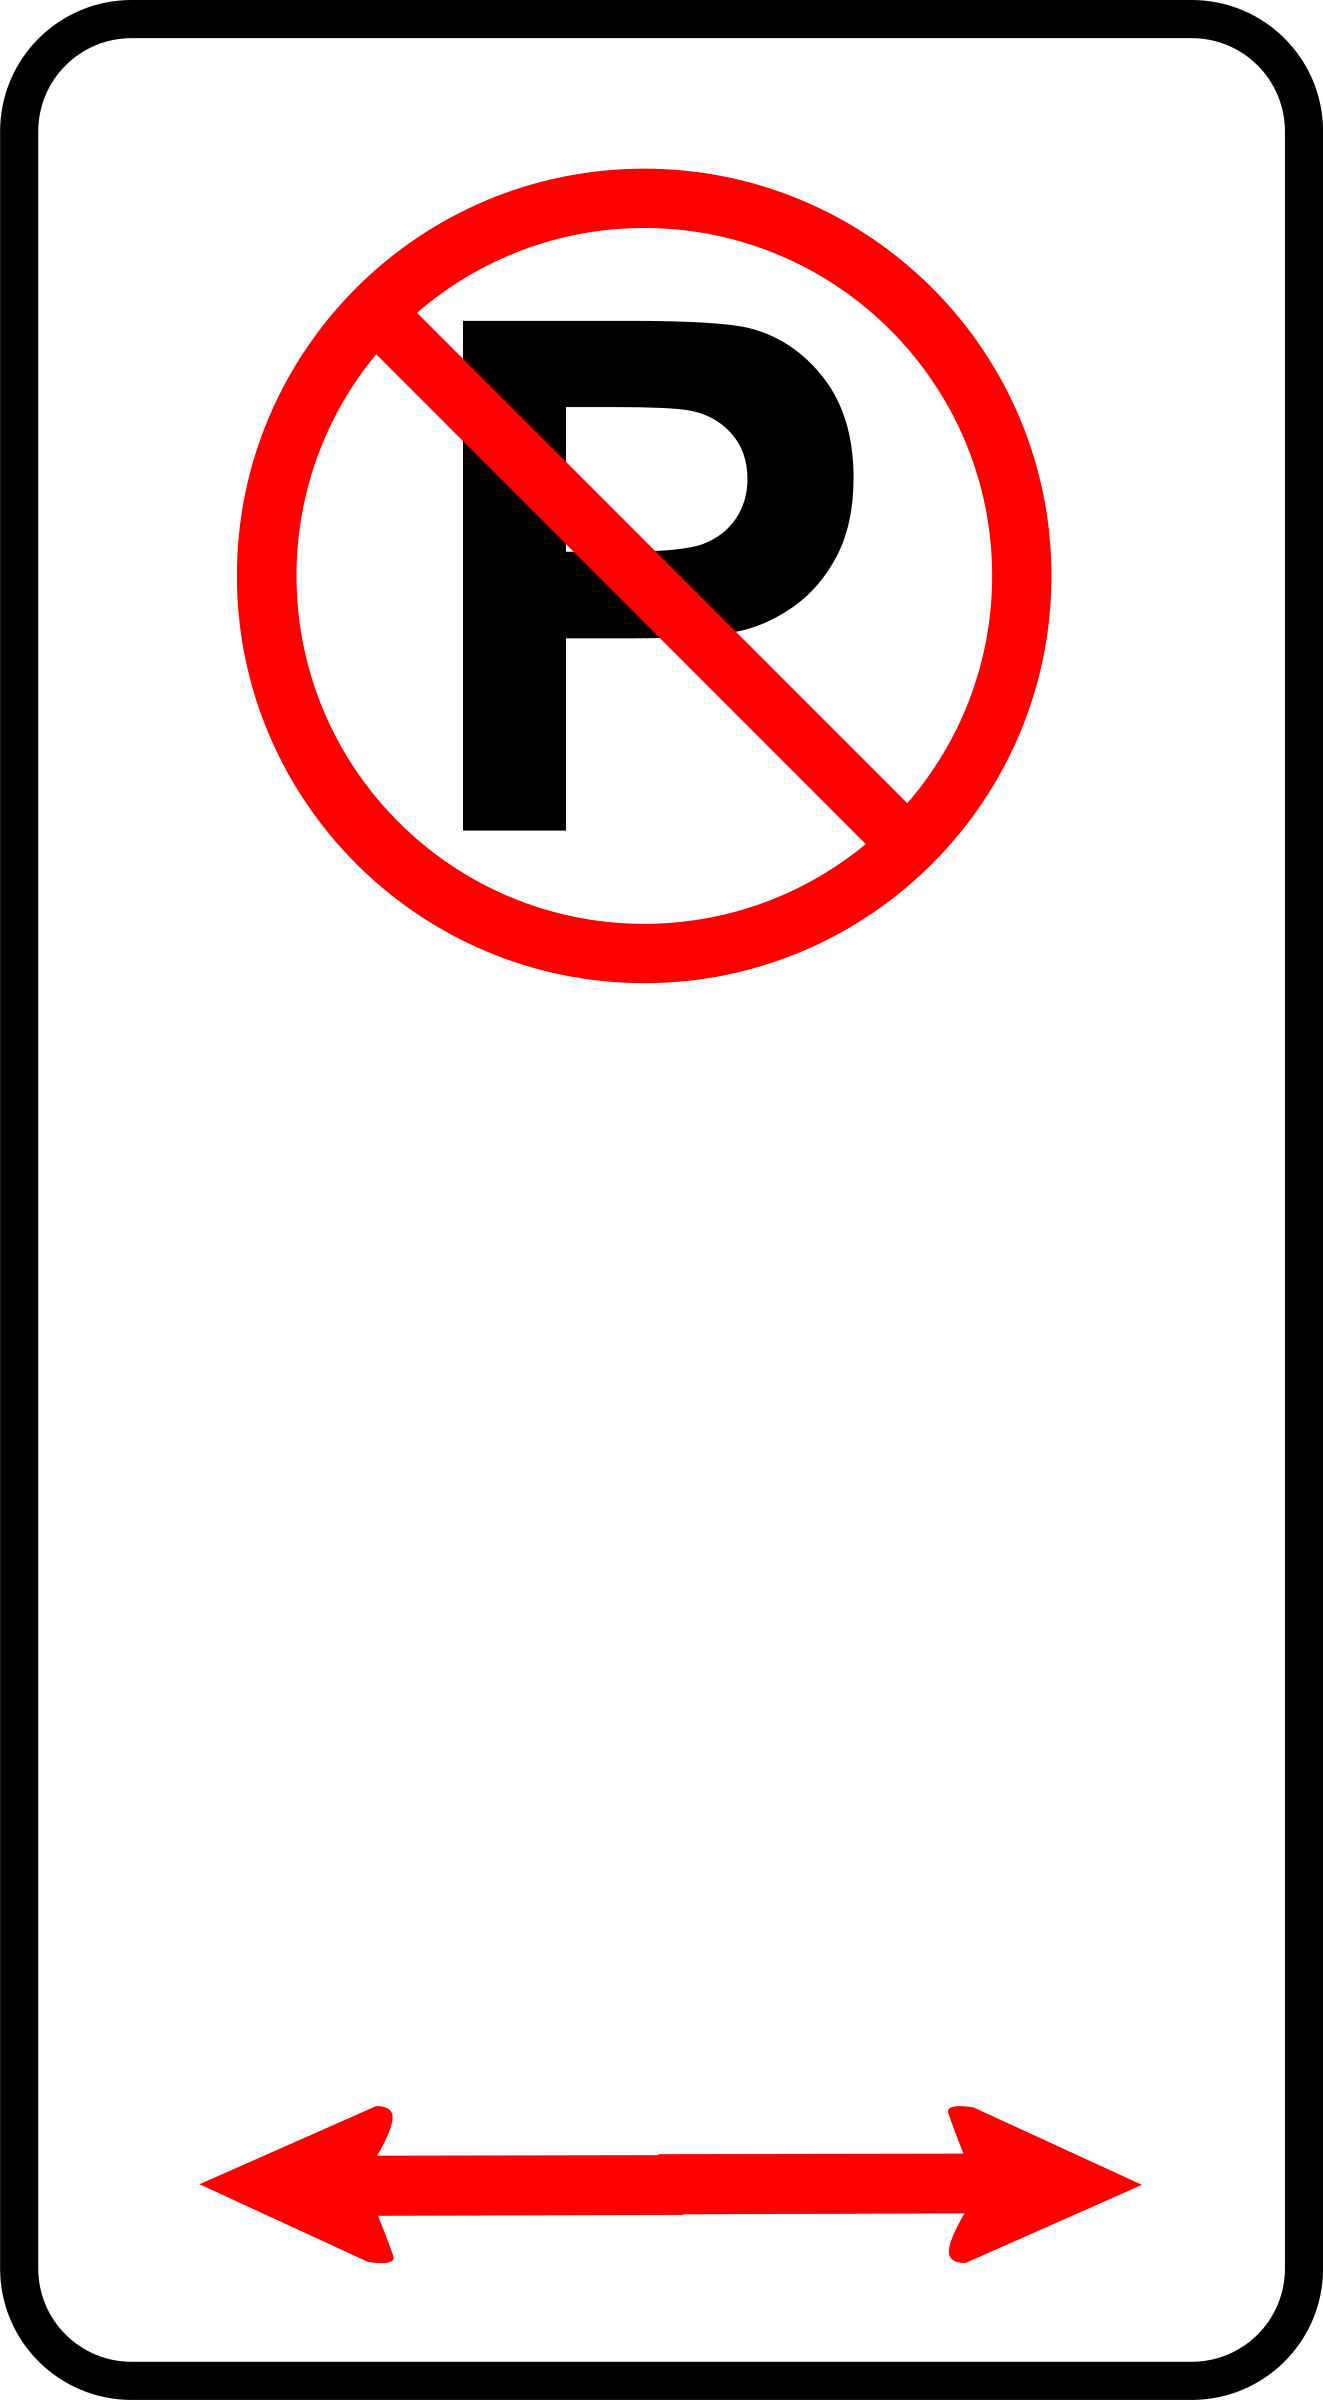 No Parking Sign Clipart - Clipart Suggest